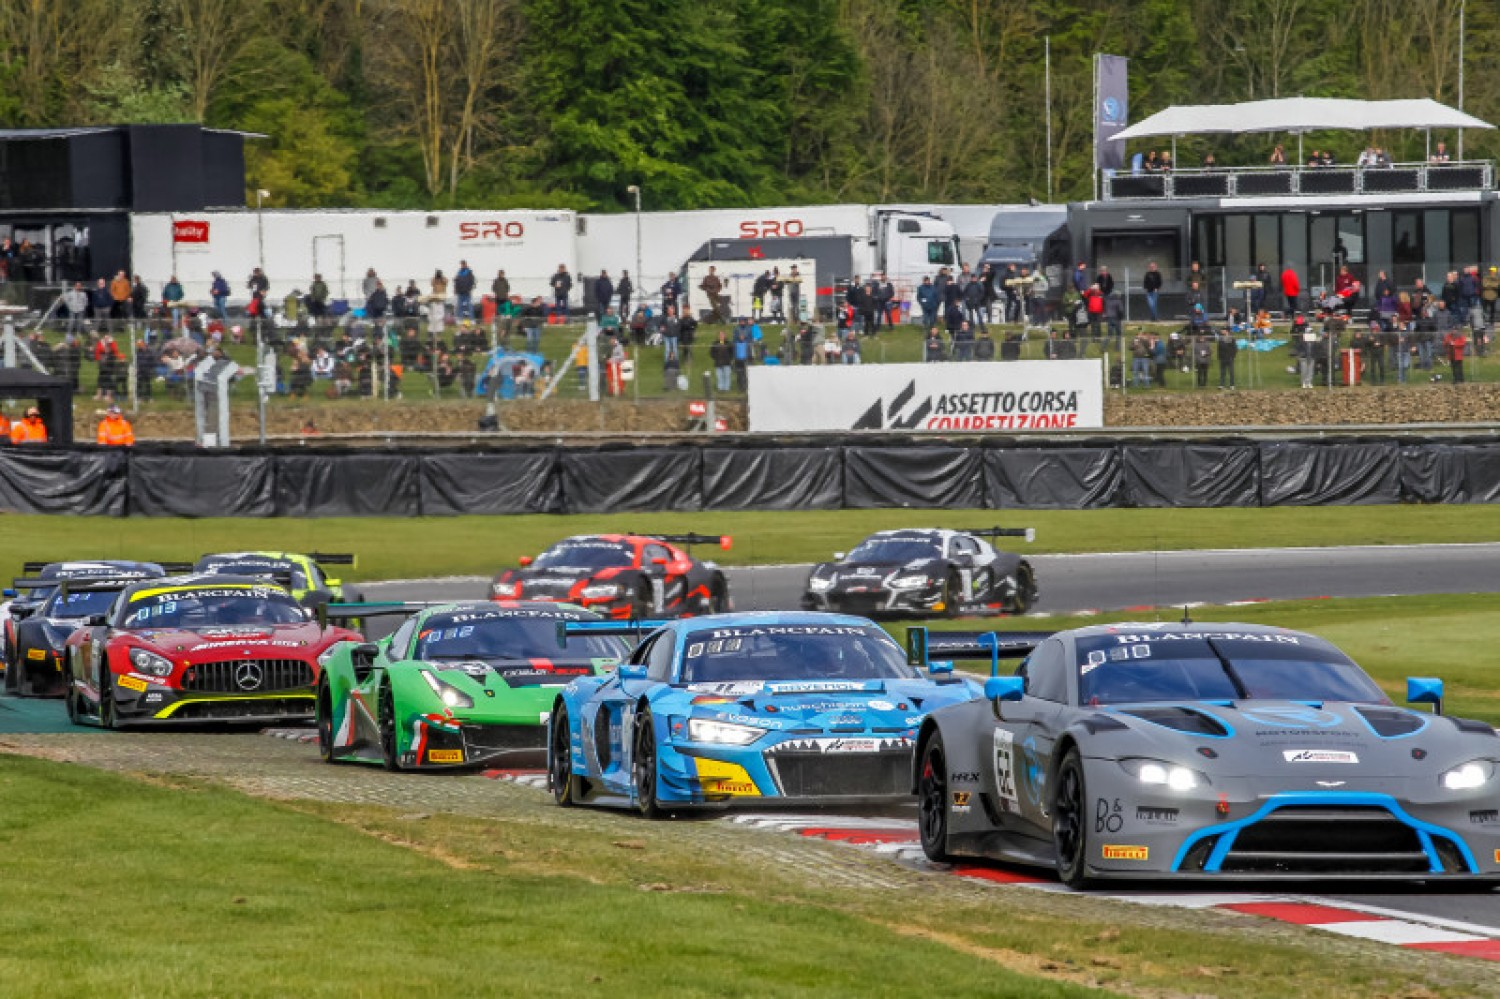 Blancpain GT World Challenge Europe grid reaches capacity for Misano as GetSpeed Performance adds extra Mercedes-AMG